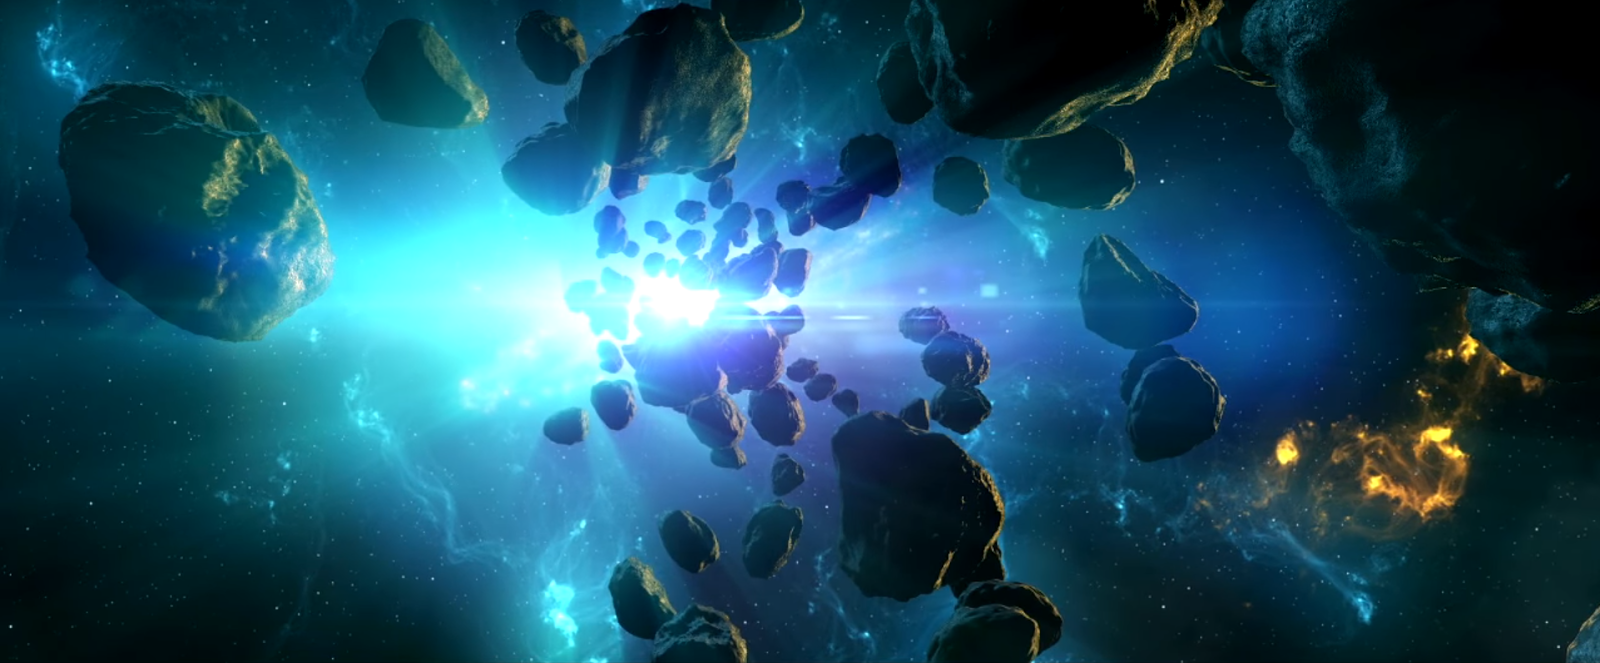 Create a space scene in after effects using element 3d for Space created